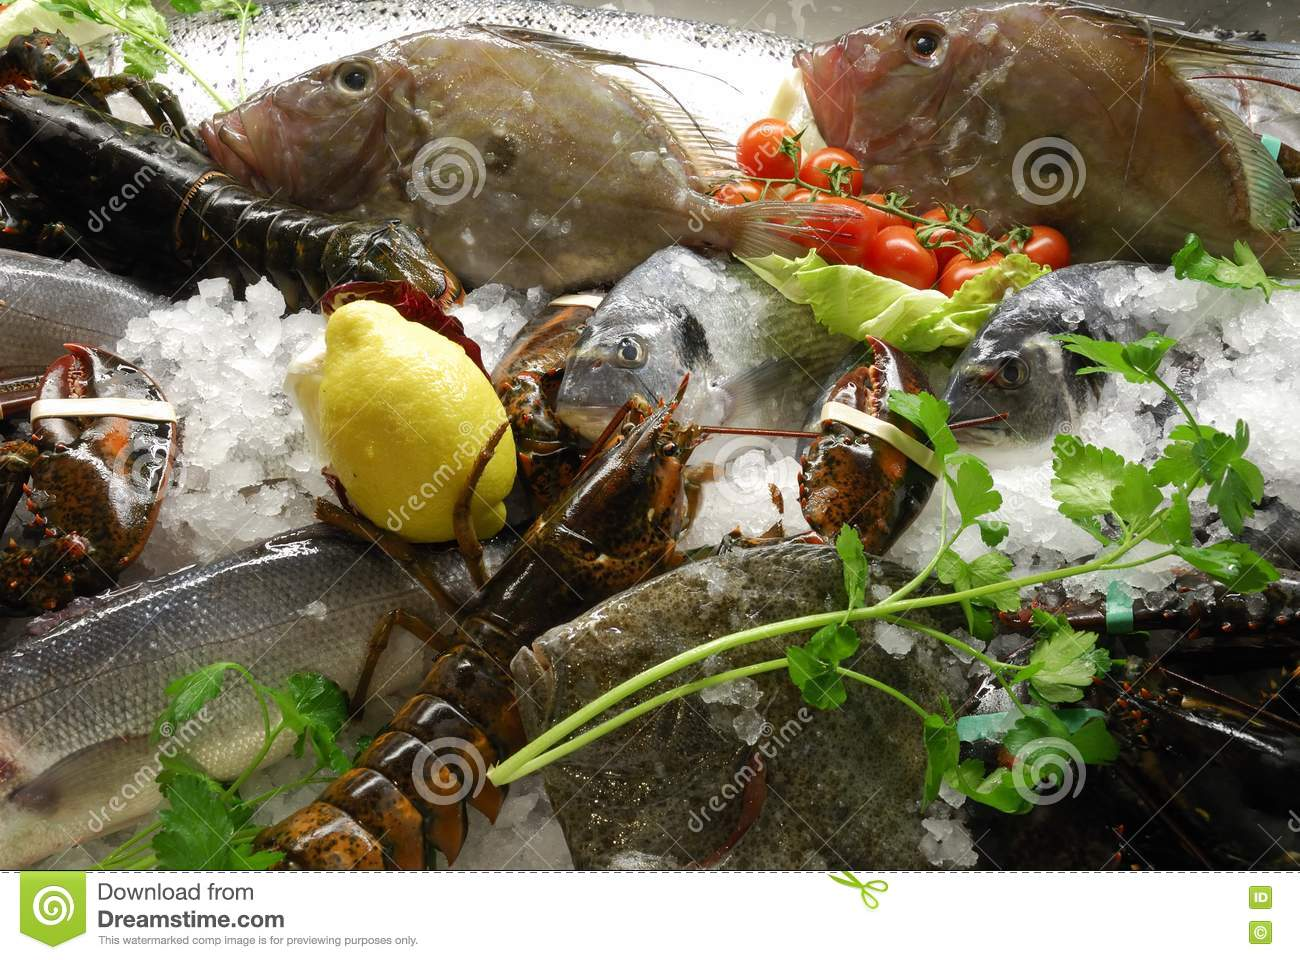 Eating fish royalty free stock photo image 15535255 for Dreaming of eating fish